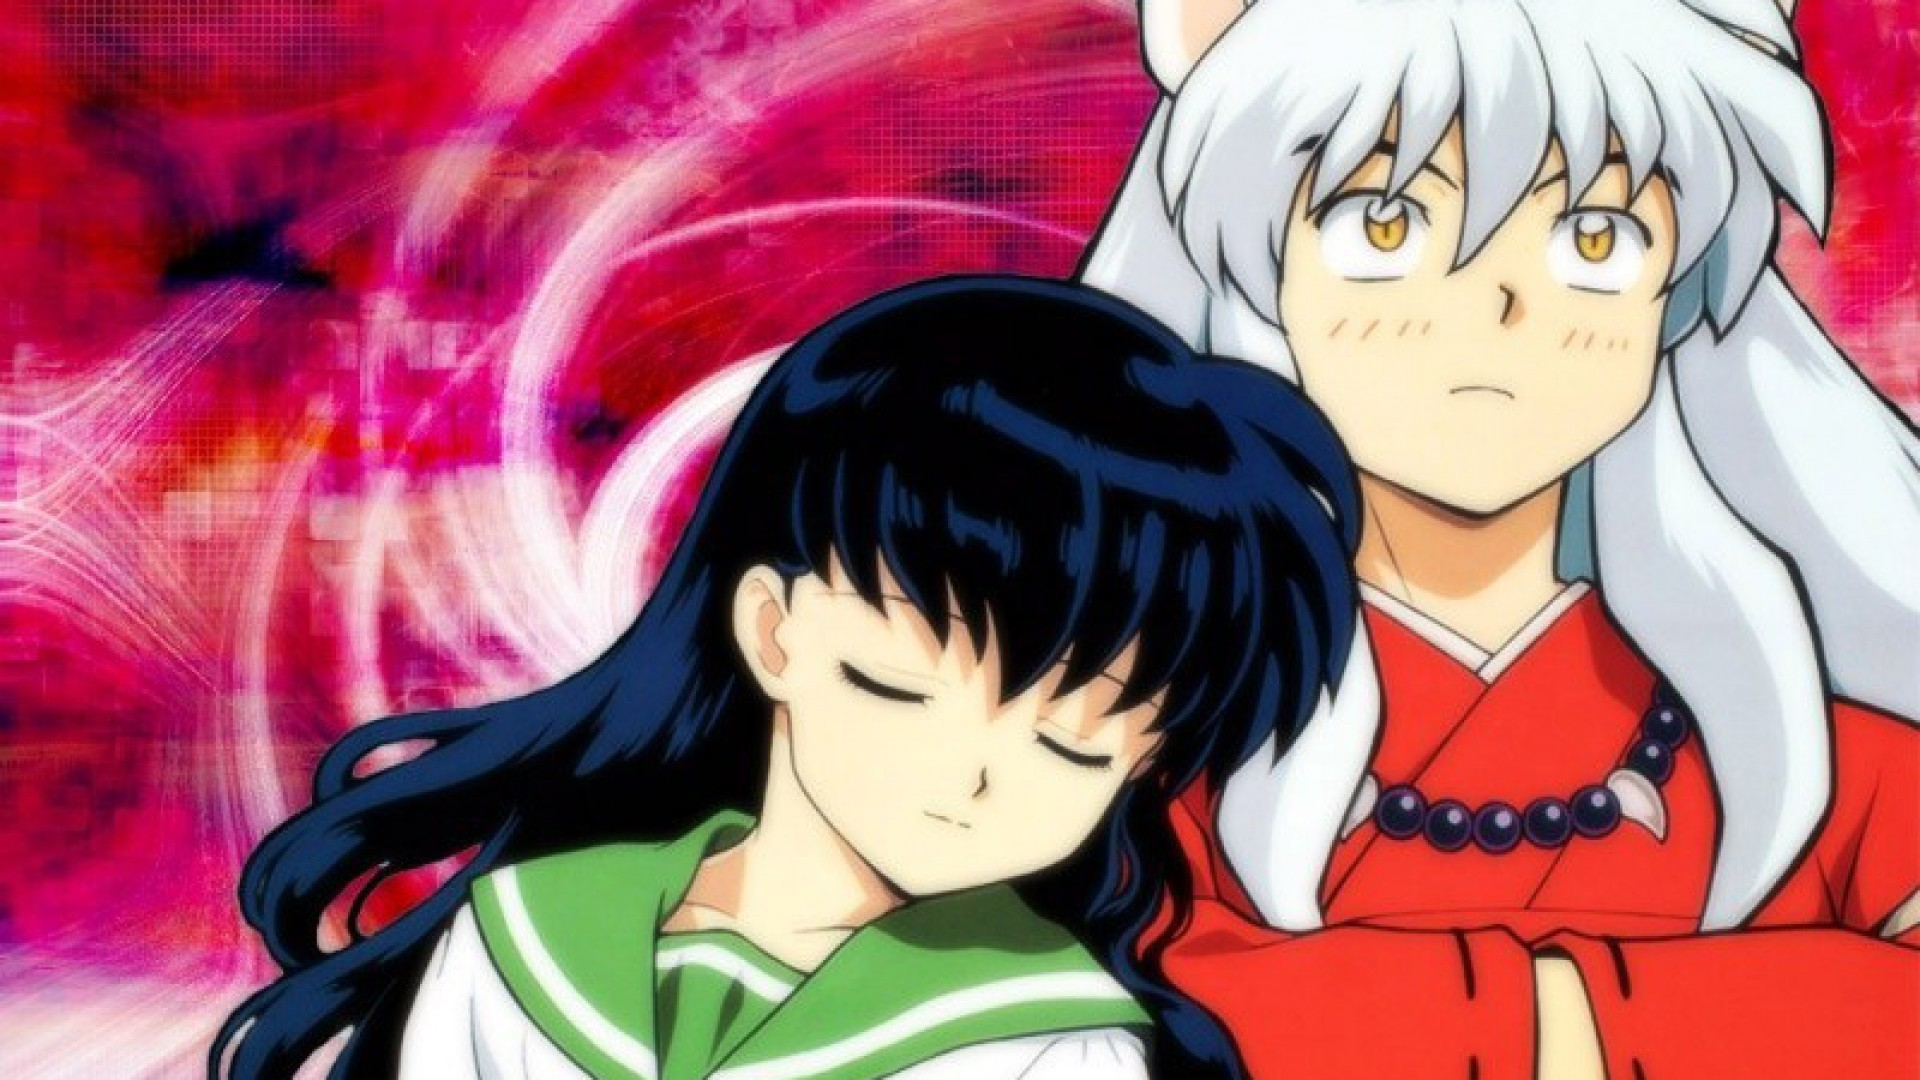 Res: 1920x1080, Inuyasha 2014 71 Widescreen Wallpaper